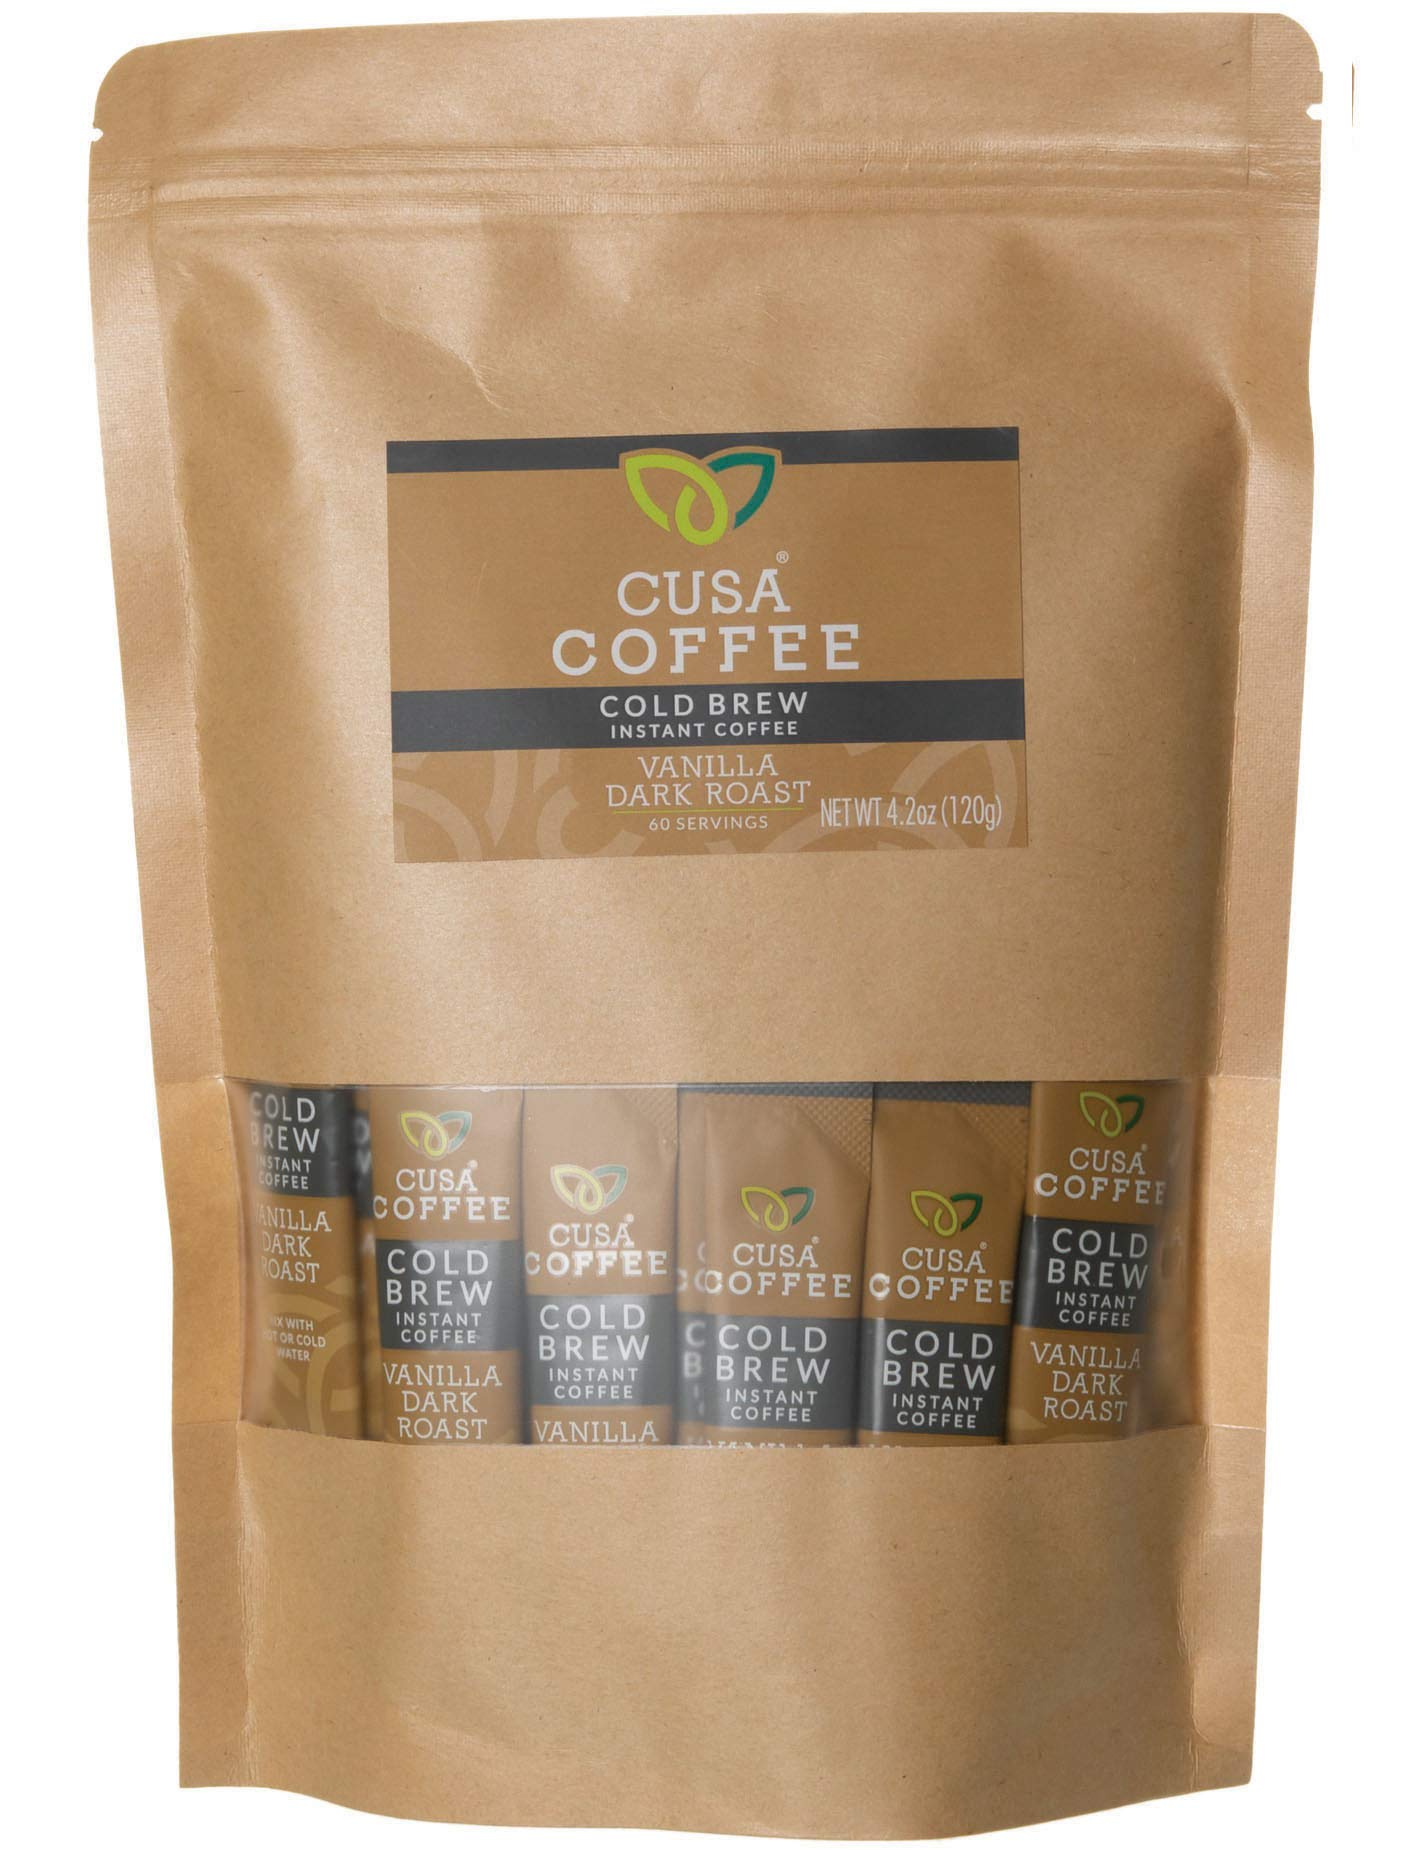 Cusa Coffee: Vanilla Dark Roast Cold Brew Instant Coffee - No Sugar or Preservatives - Ready in Seconds - Hot or Iced(60 Servings)